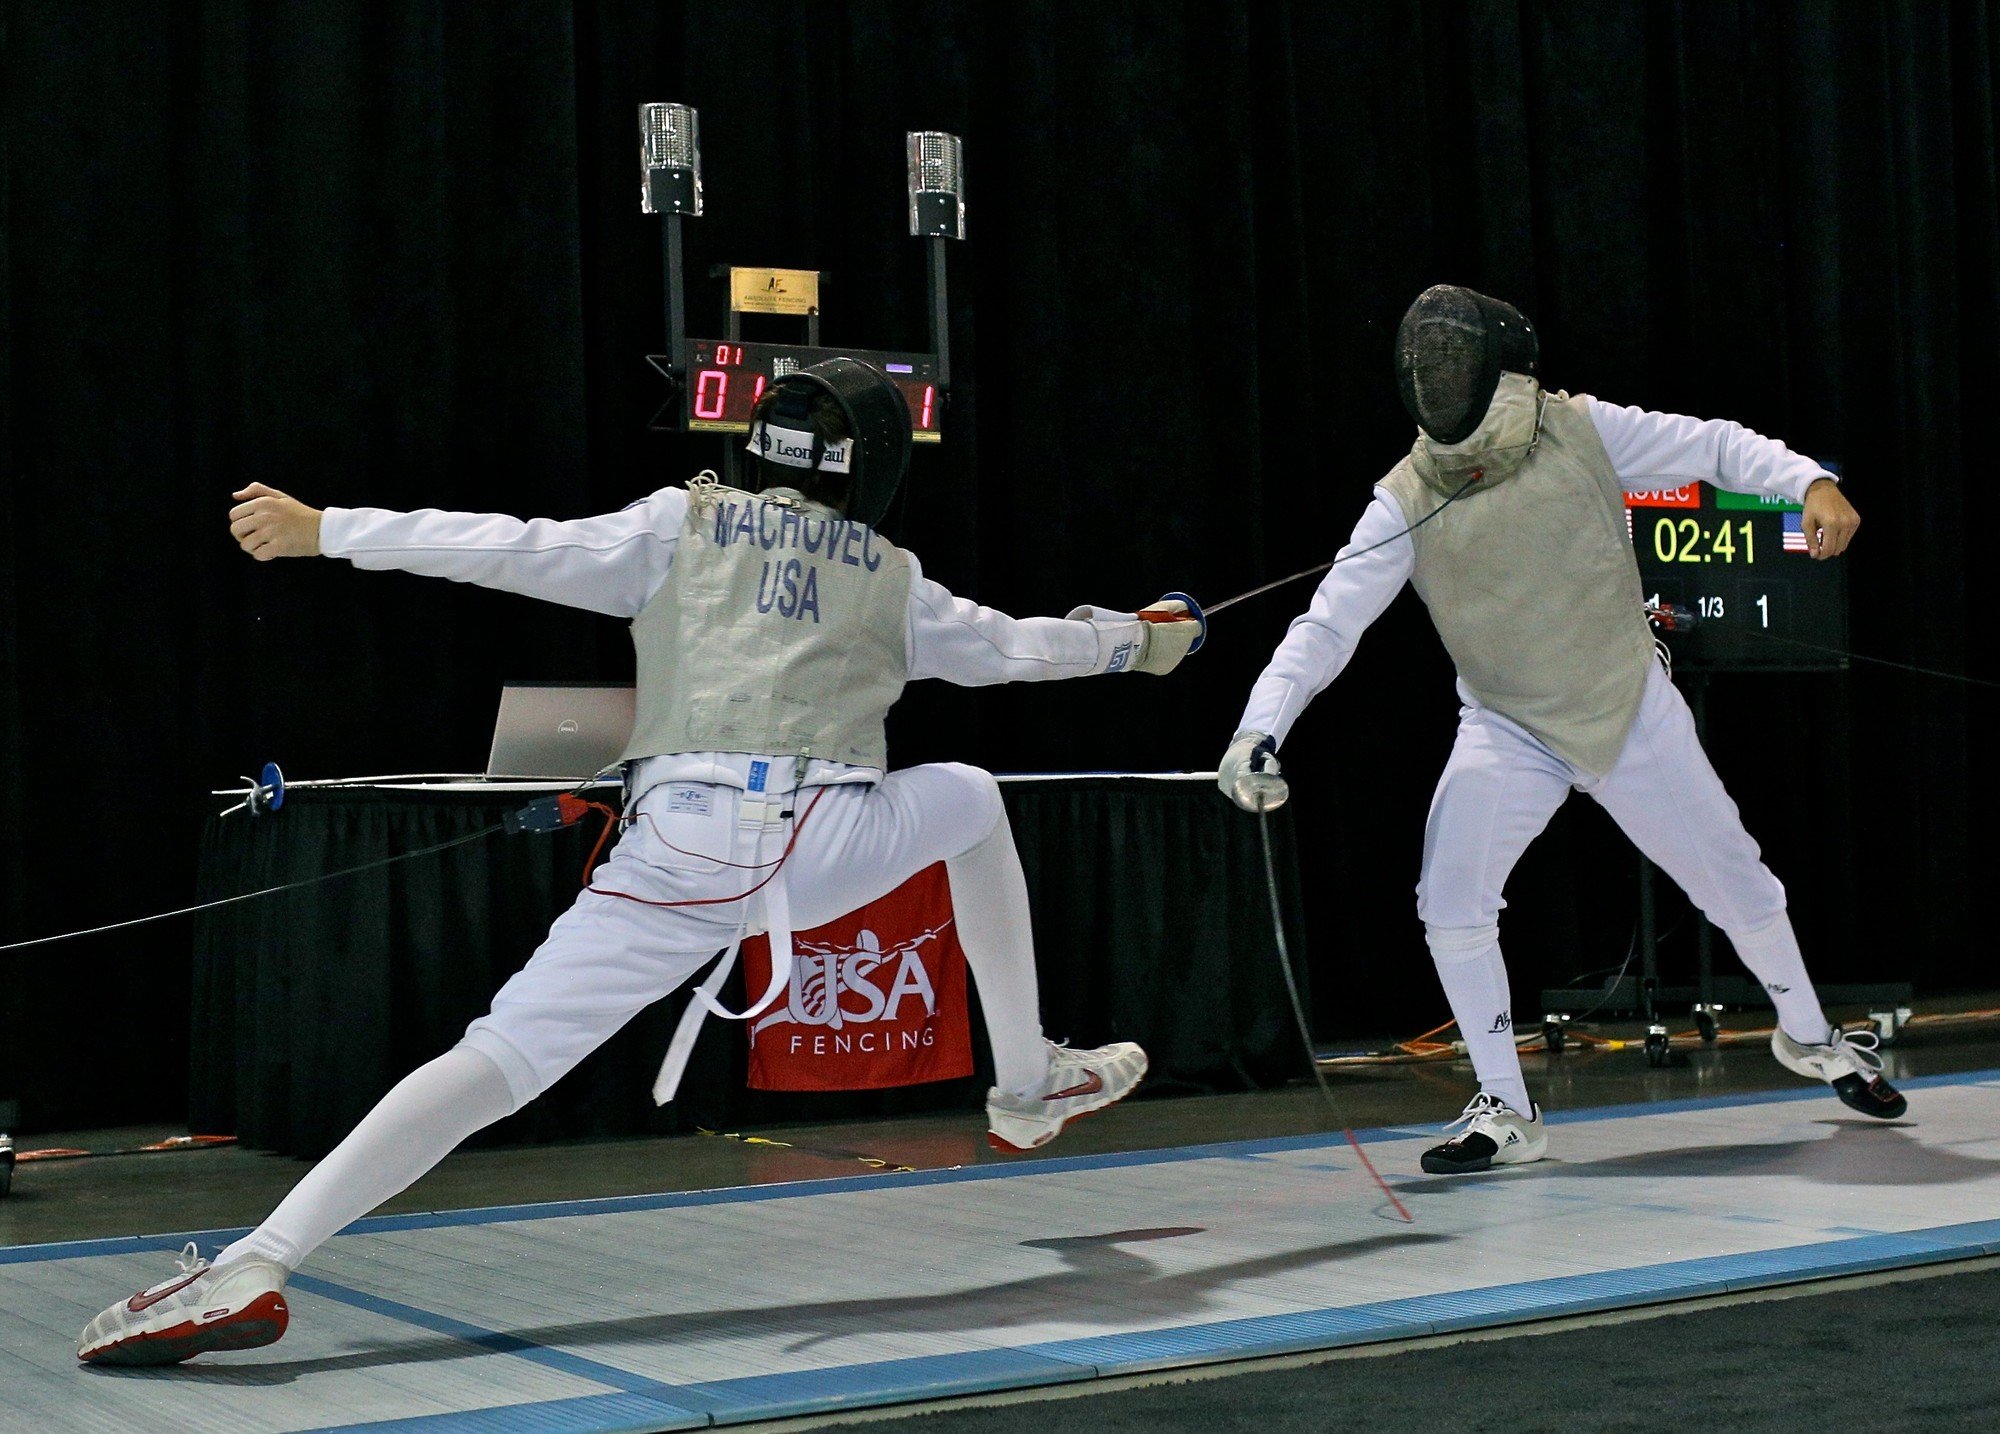 East Rockaway sophomore Andrew Machovec, left, the U.S. Youth 14 men's foil champion,  will begin his quest for a world championship in the Cadet division next month in Budapest, Hungary.